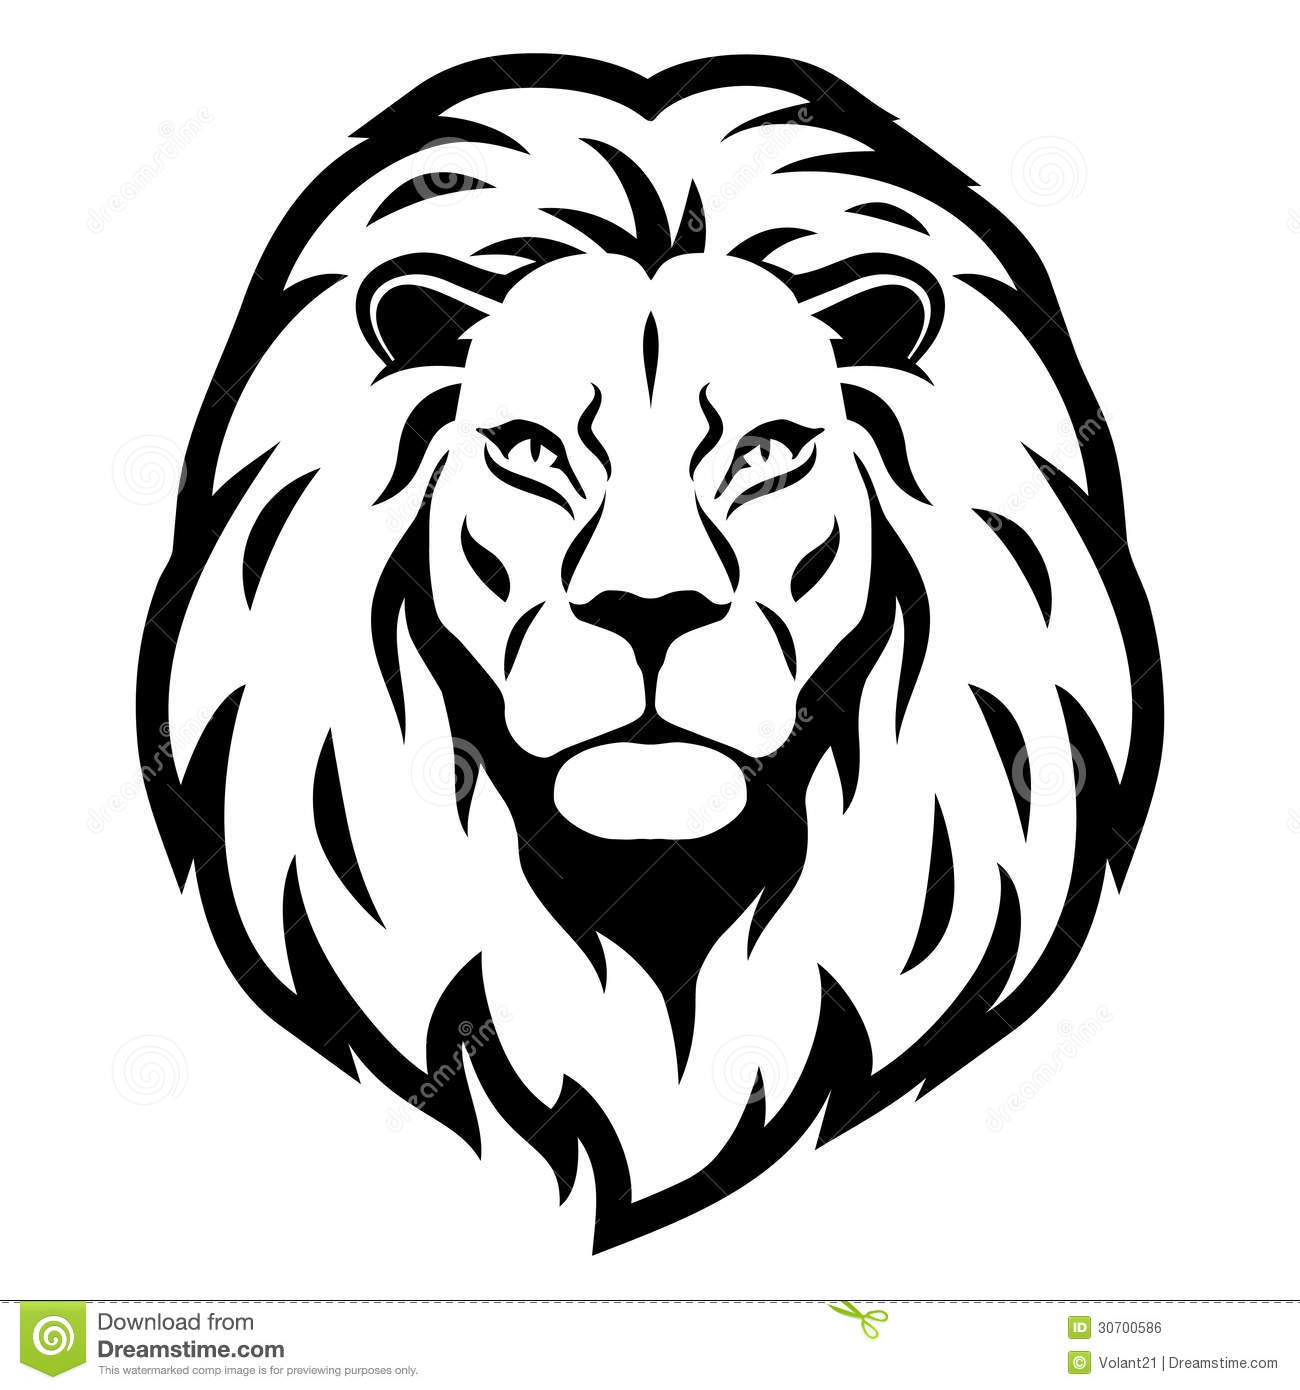 Lion Head Royalty Free Stock Image - Image: 30700586